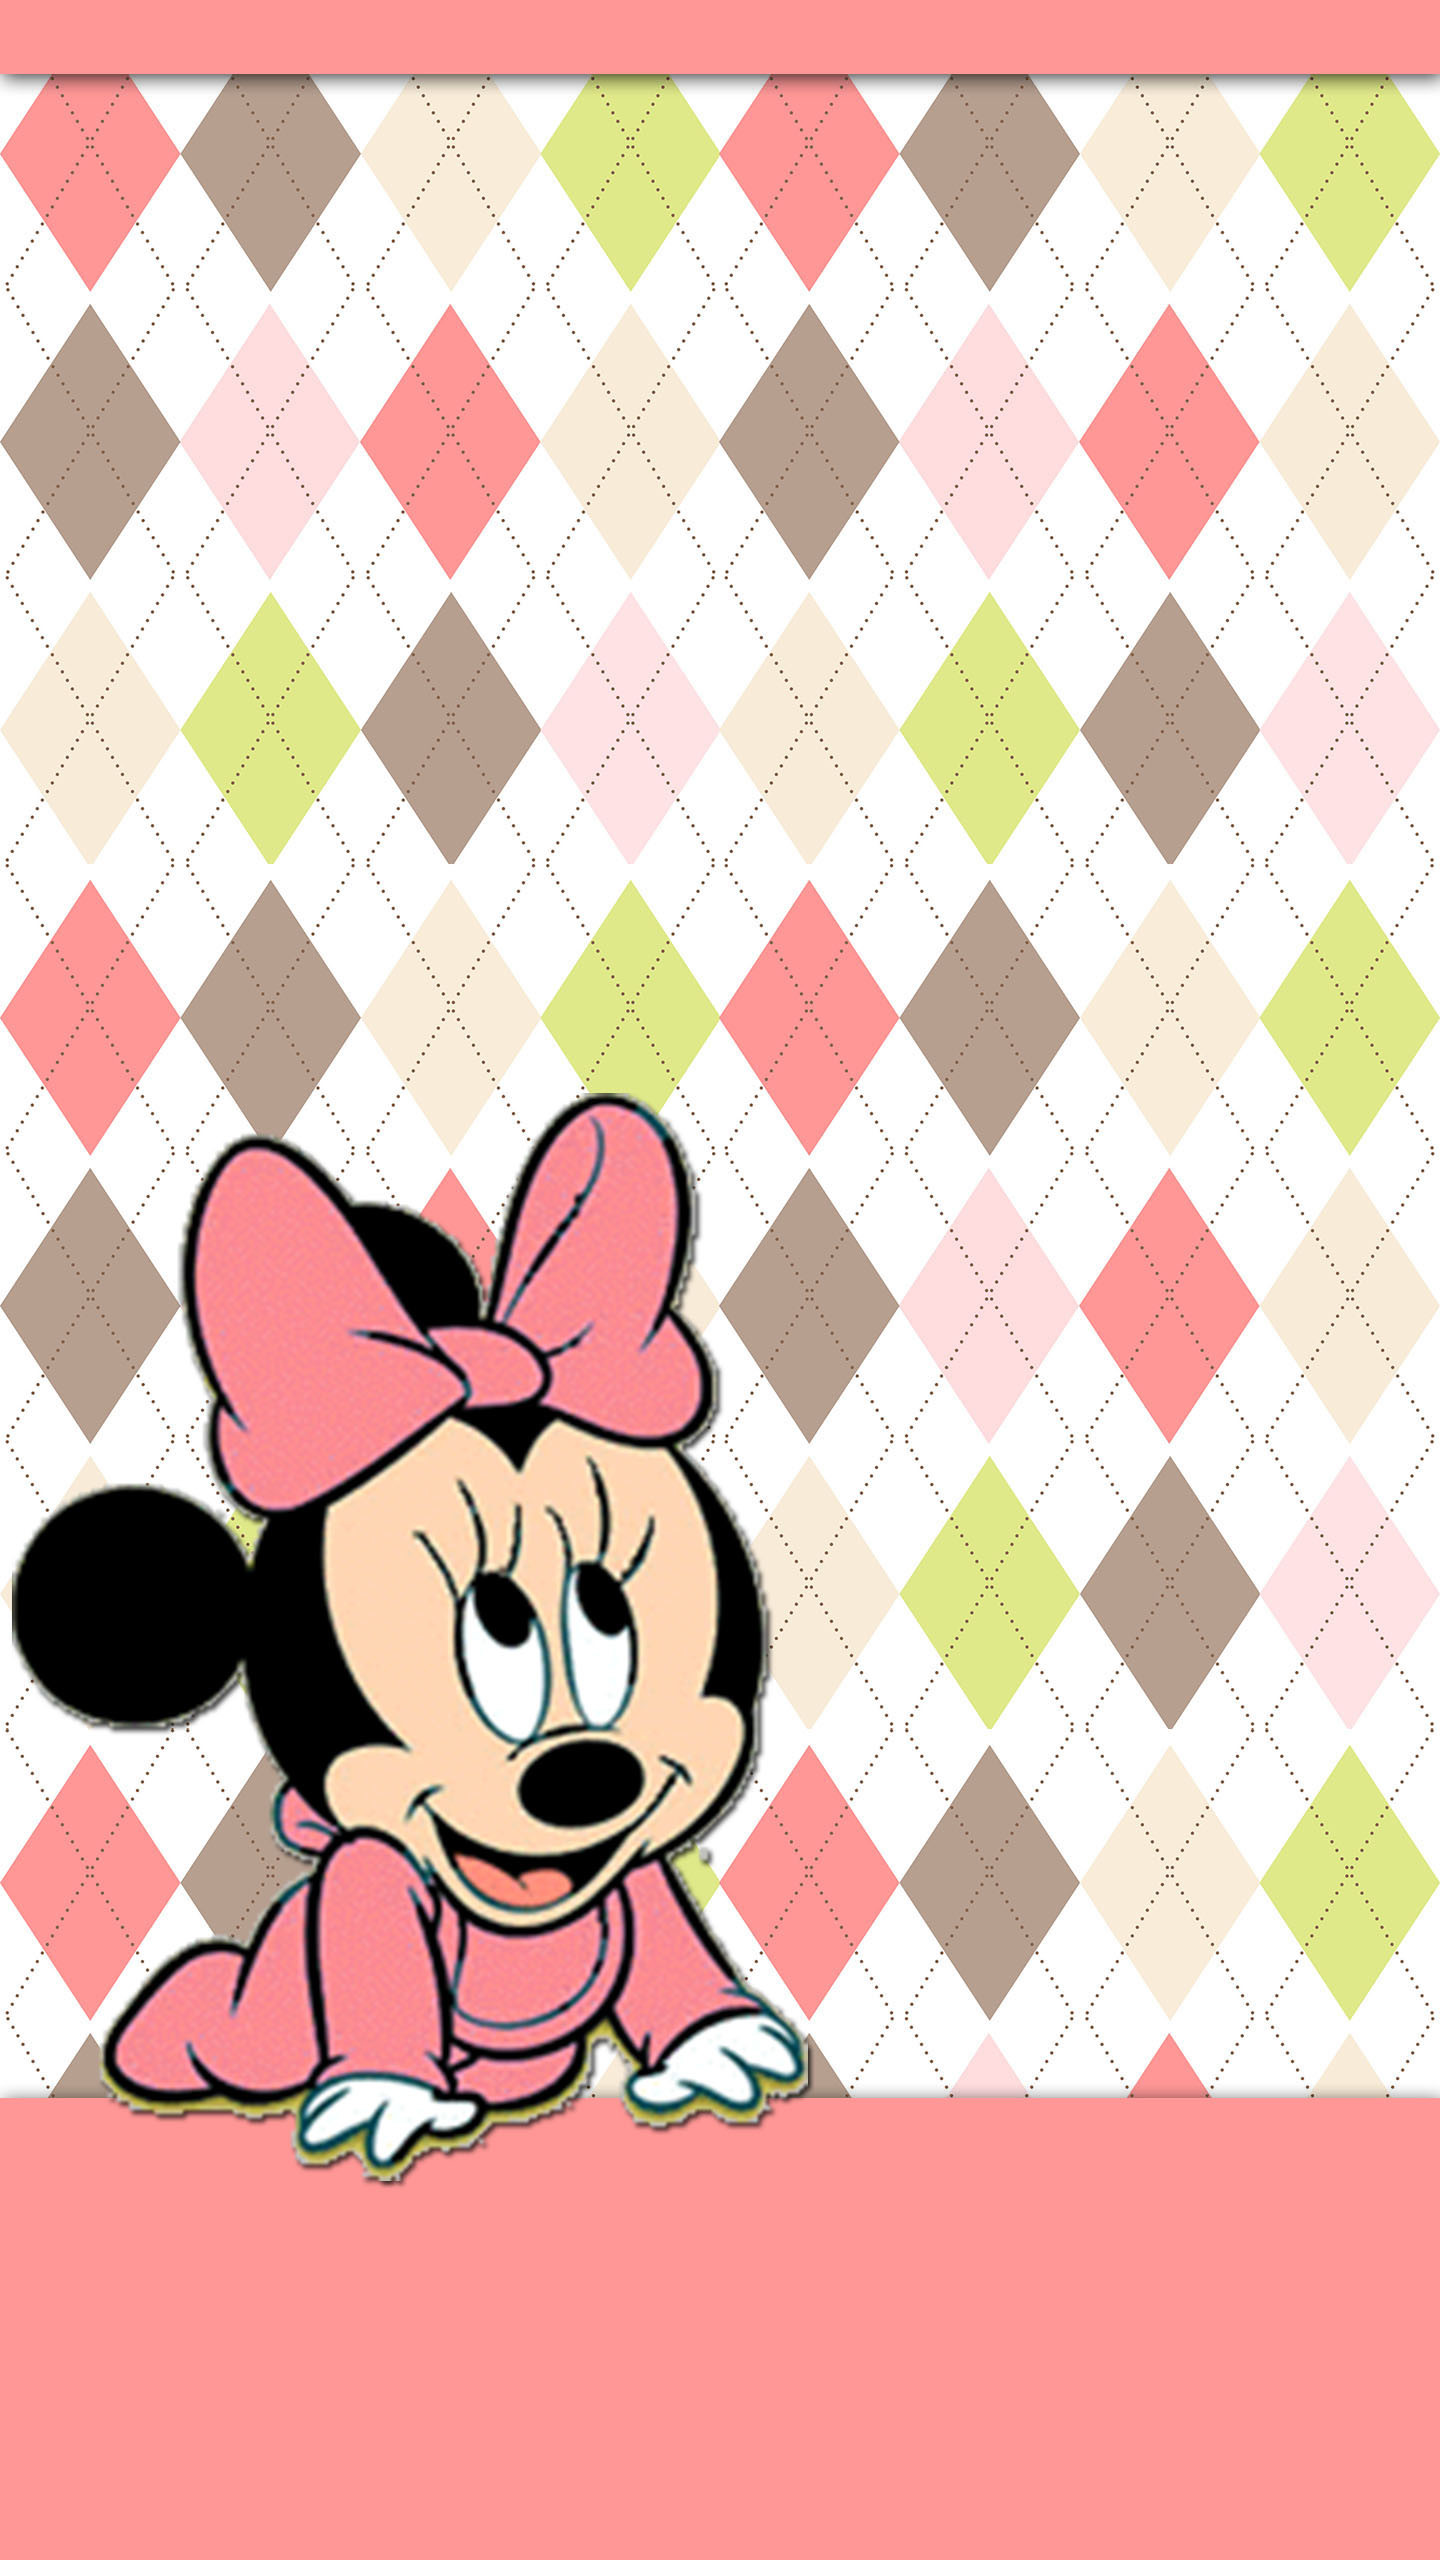 1440x2560 BABY MINNIE MOUSE IPHONE WALLPAPER BACKGROUND